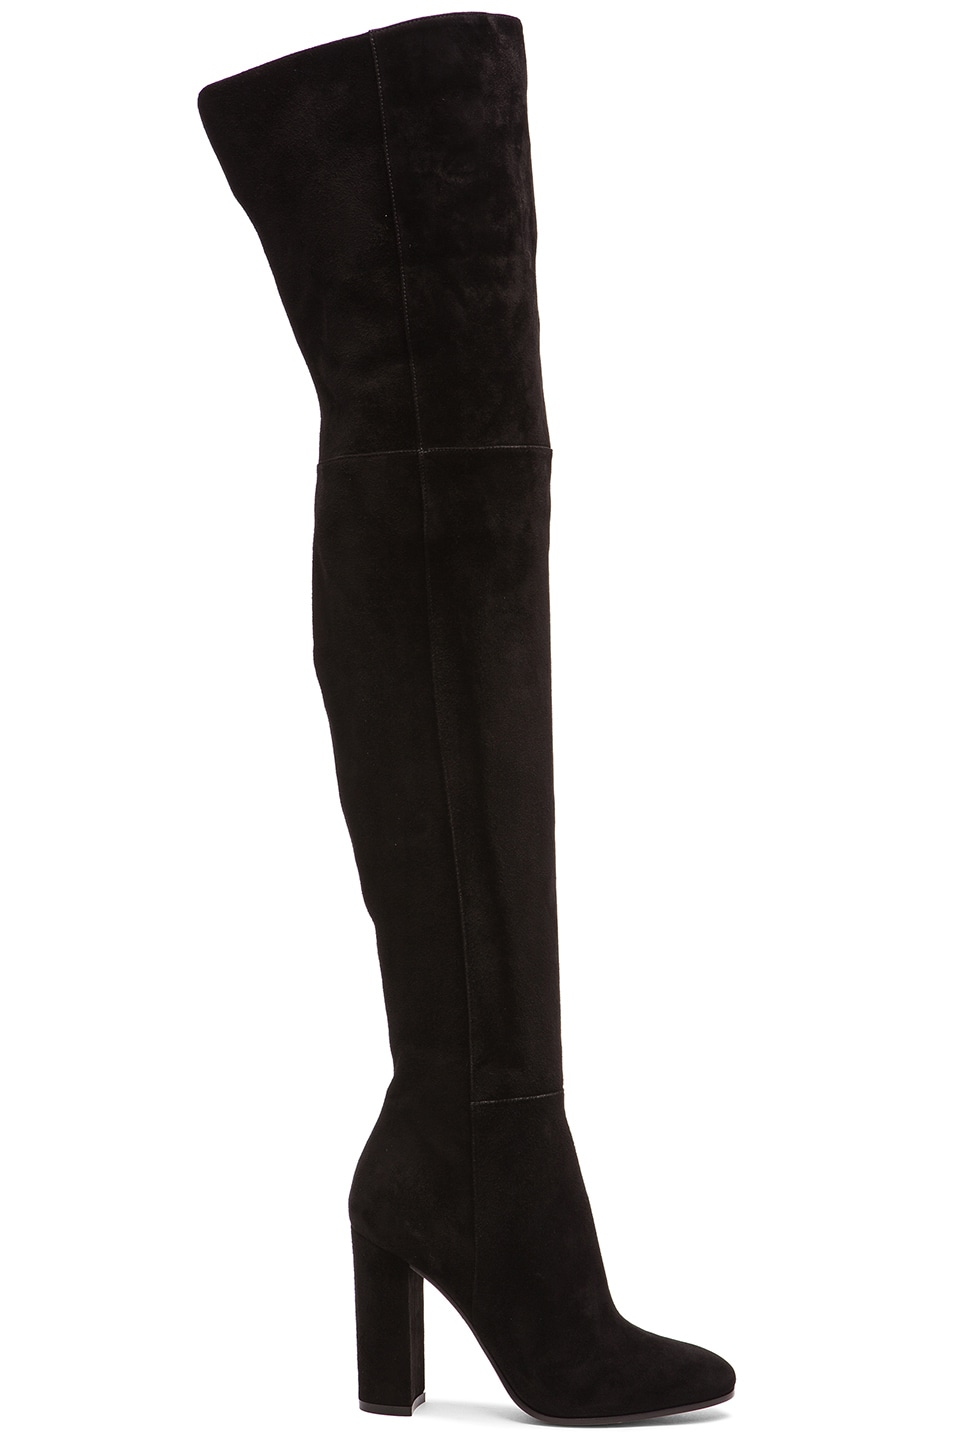 Image 1 of Gianvito Rossi Over The Knee Suede Boots in Black Suede